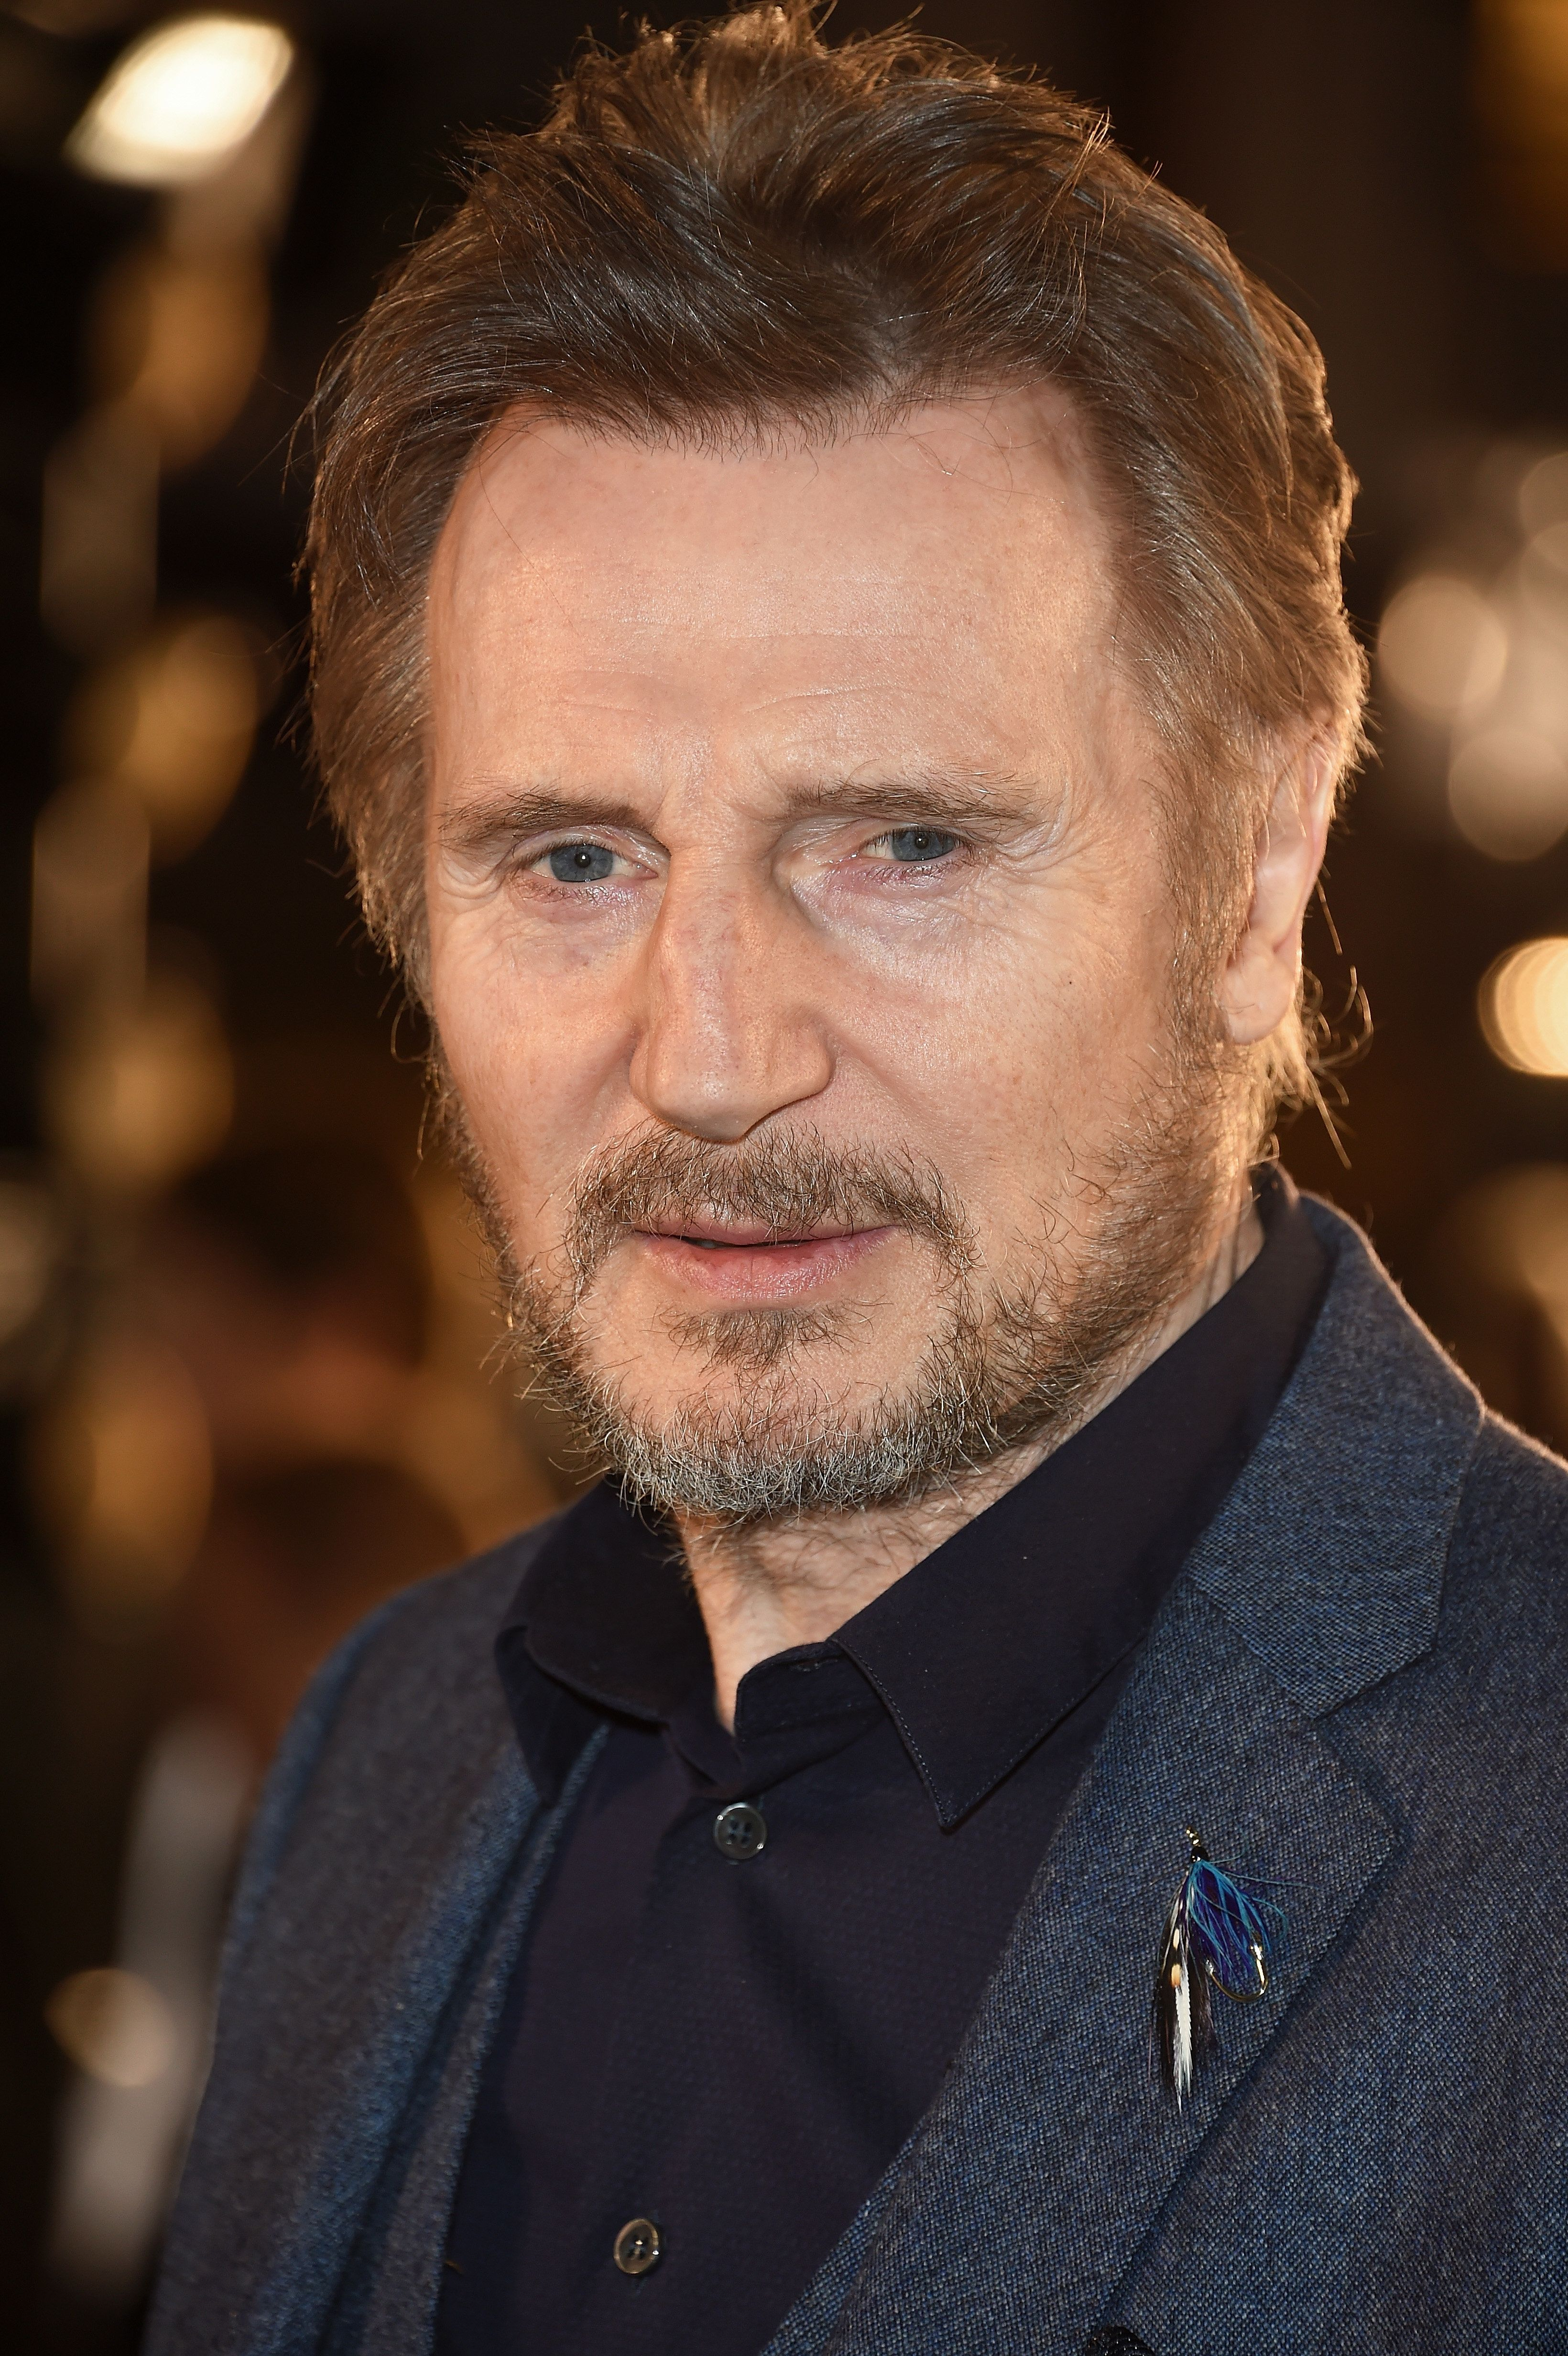 LONDON, ENGLAND - MARCH 12:  Liam Neeson attends the UK Premiere of 'The White Crow' at The Curzon Mayfair on March 12, 2019 in London, England.  (Photo by David M. Benett/Dave Benett/WireImage )